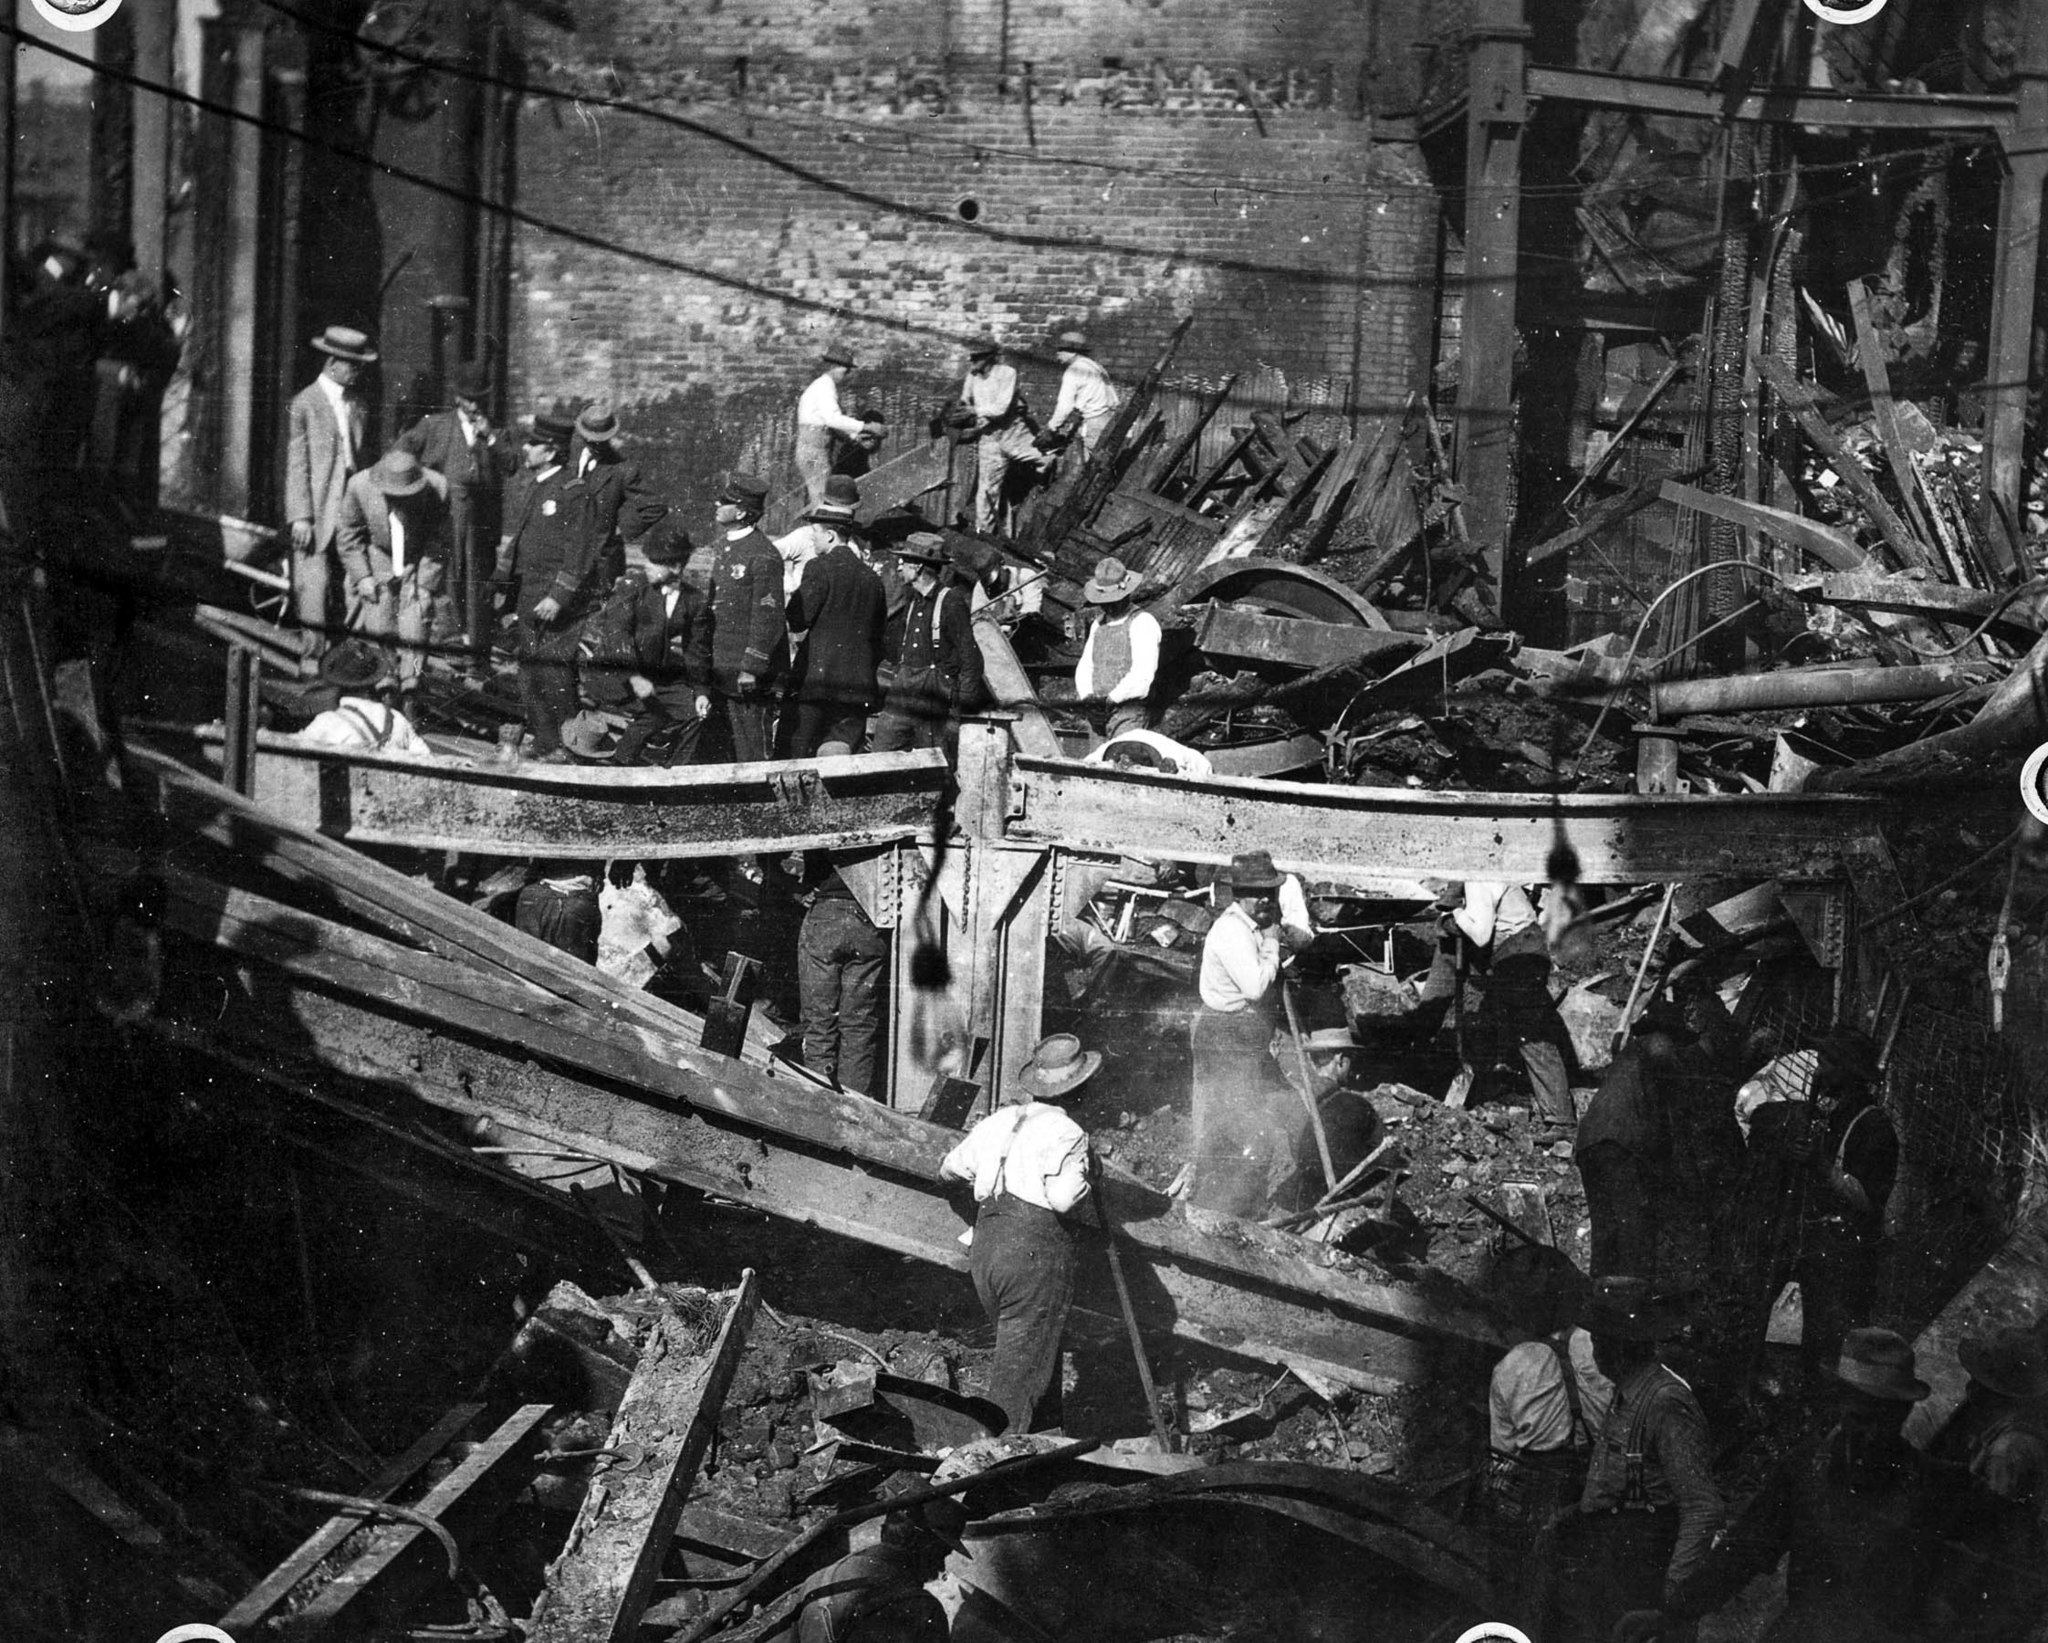 Oct. 1920: Police officials tour the ruins of the Los Angeles Times after the Oct. 1, 1910, bombing.